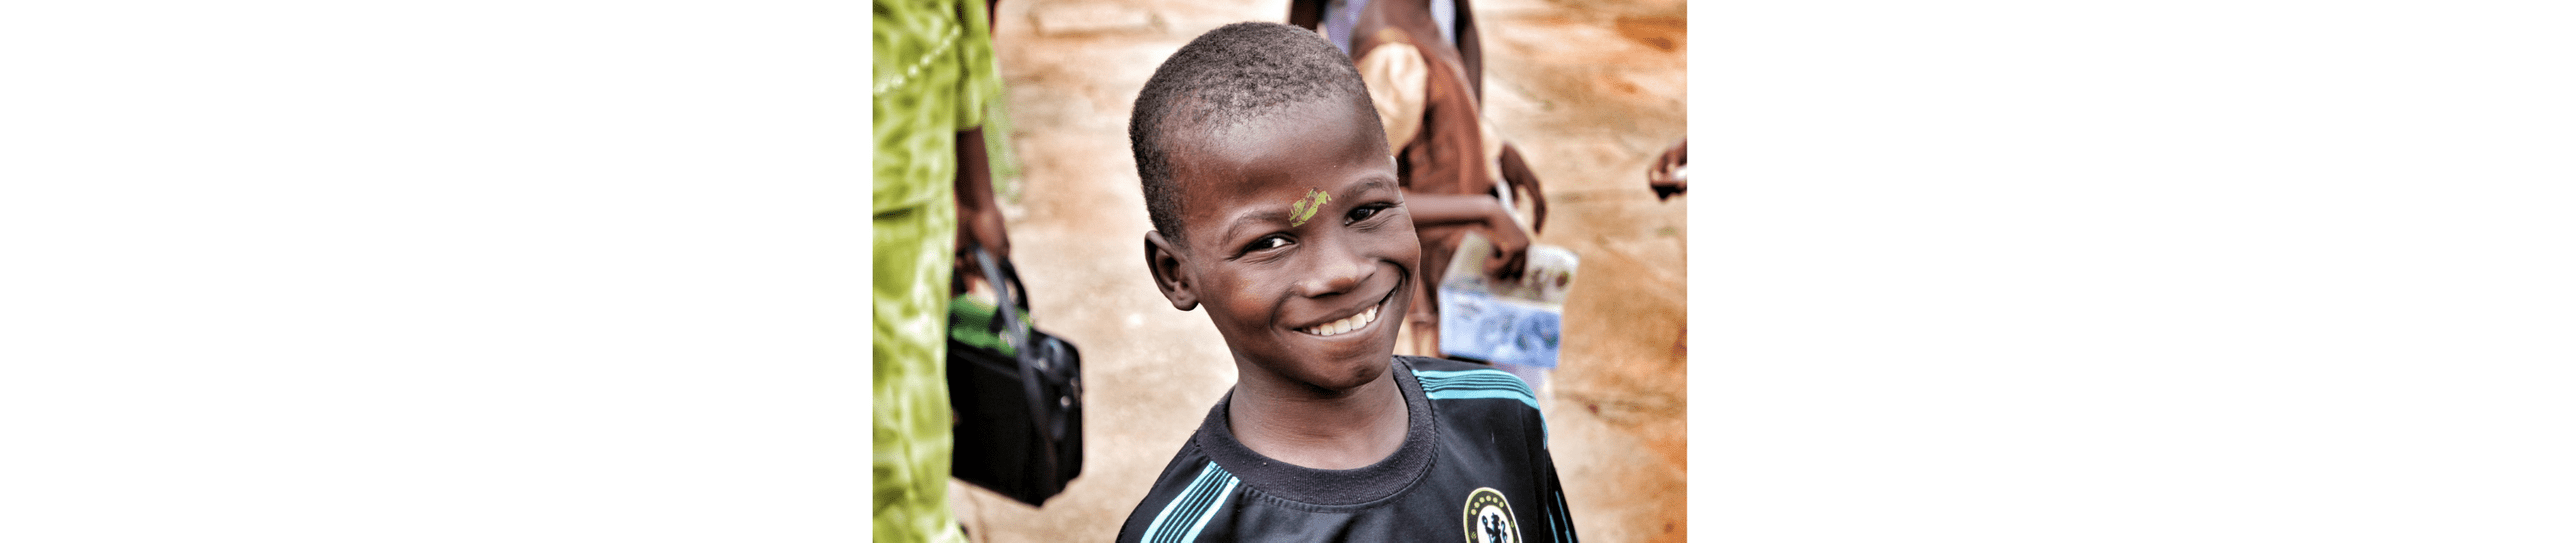 A photo of a young Nigerian boy smiling into the camera